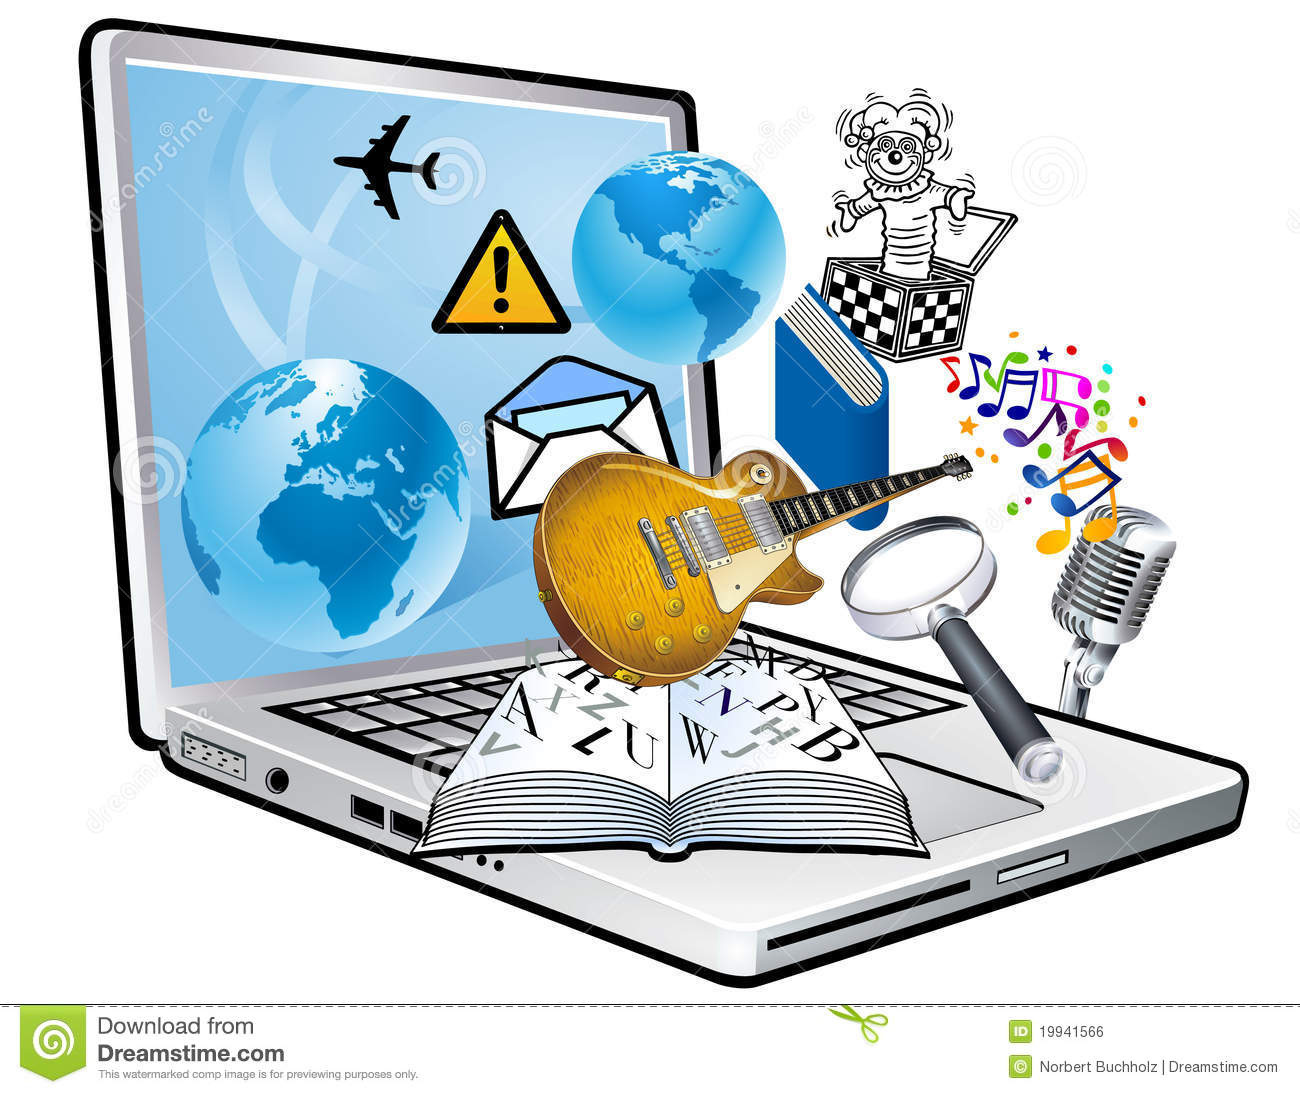 Techbology clipart png royalty free library Information technology clipart 5 » Clipart Station png royalty free library